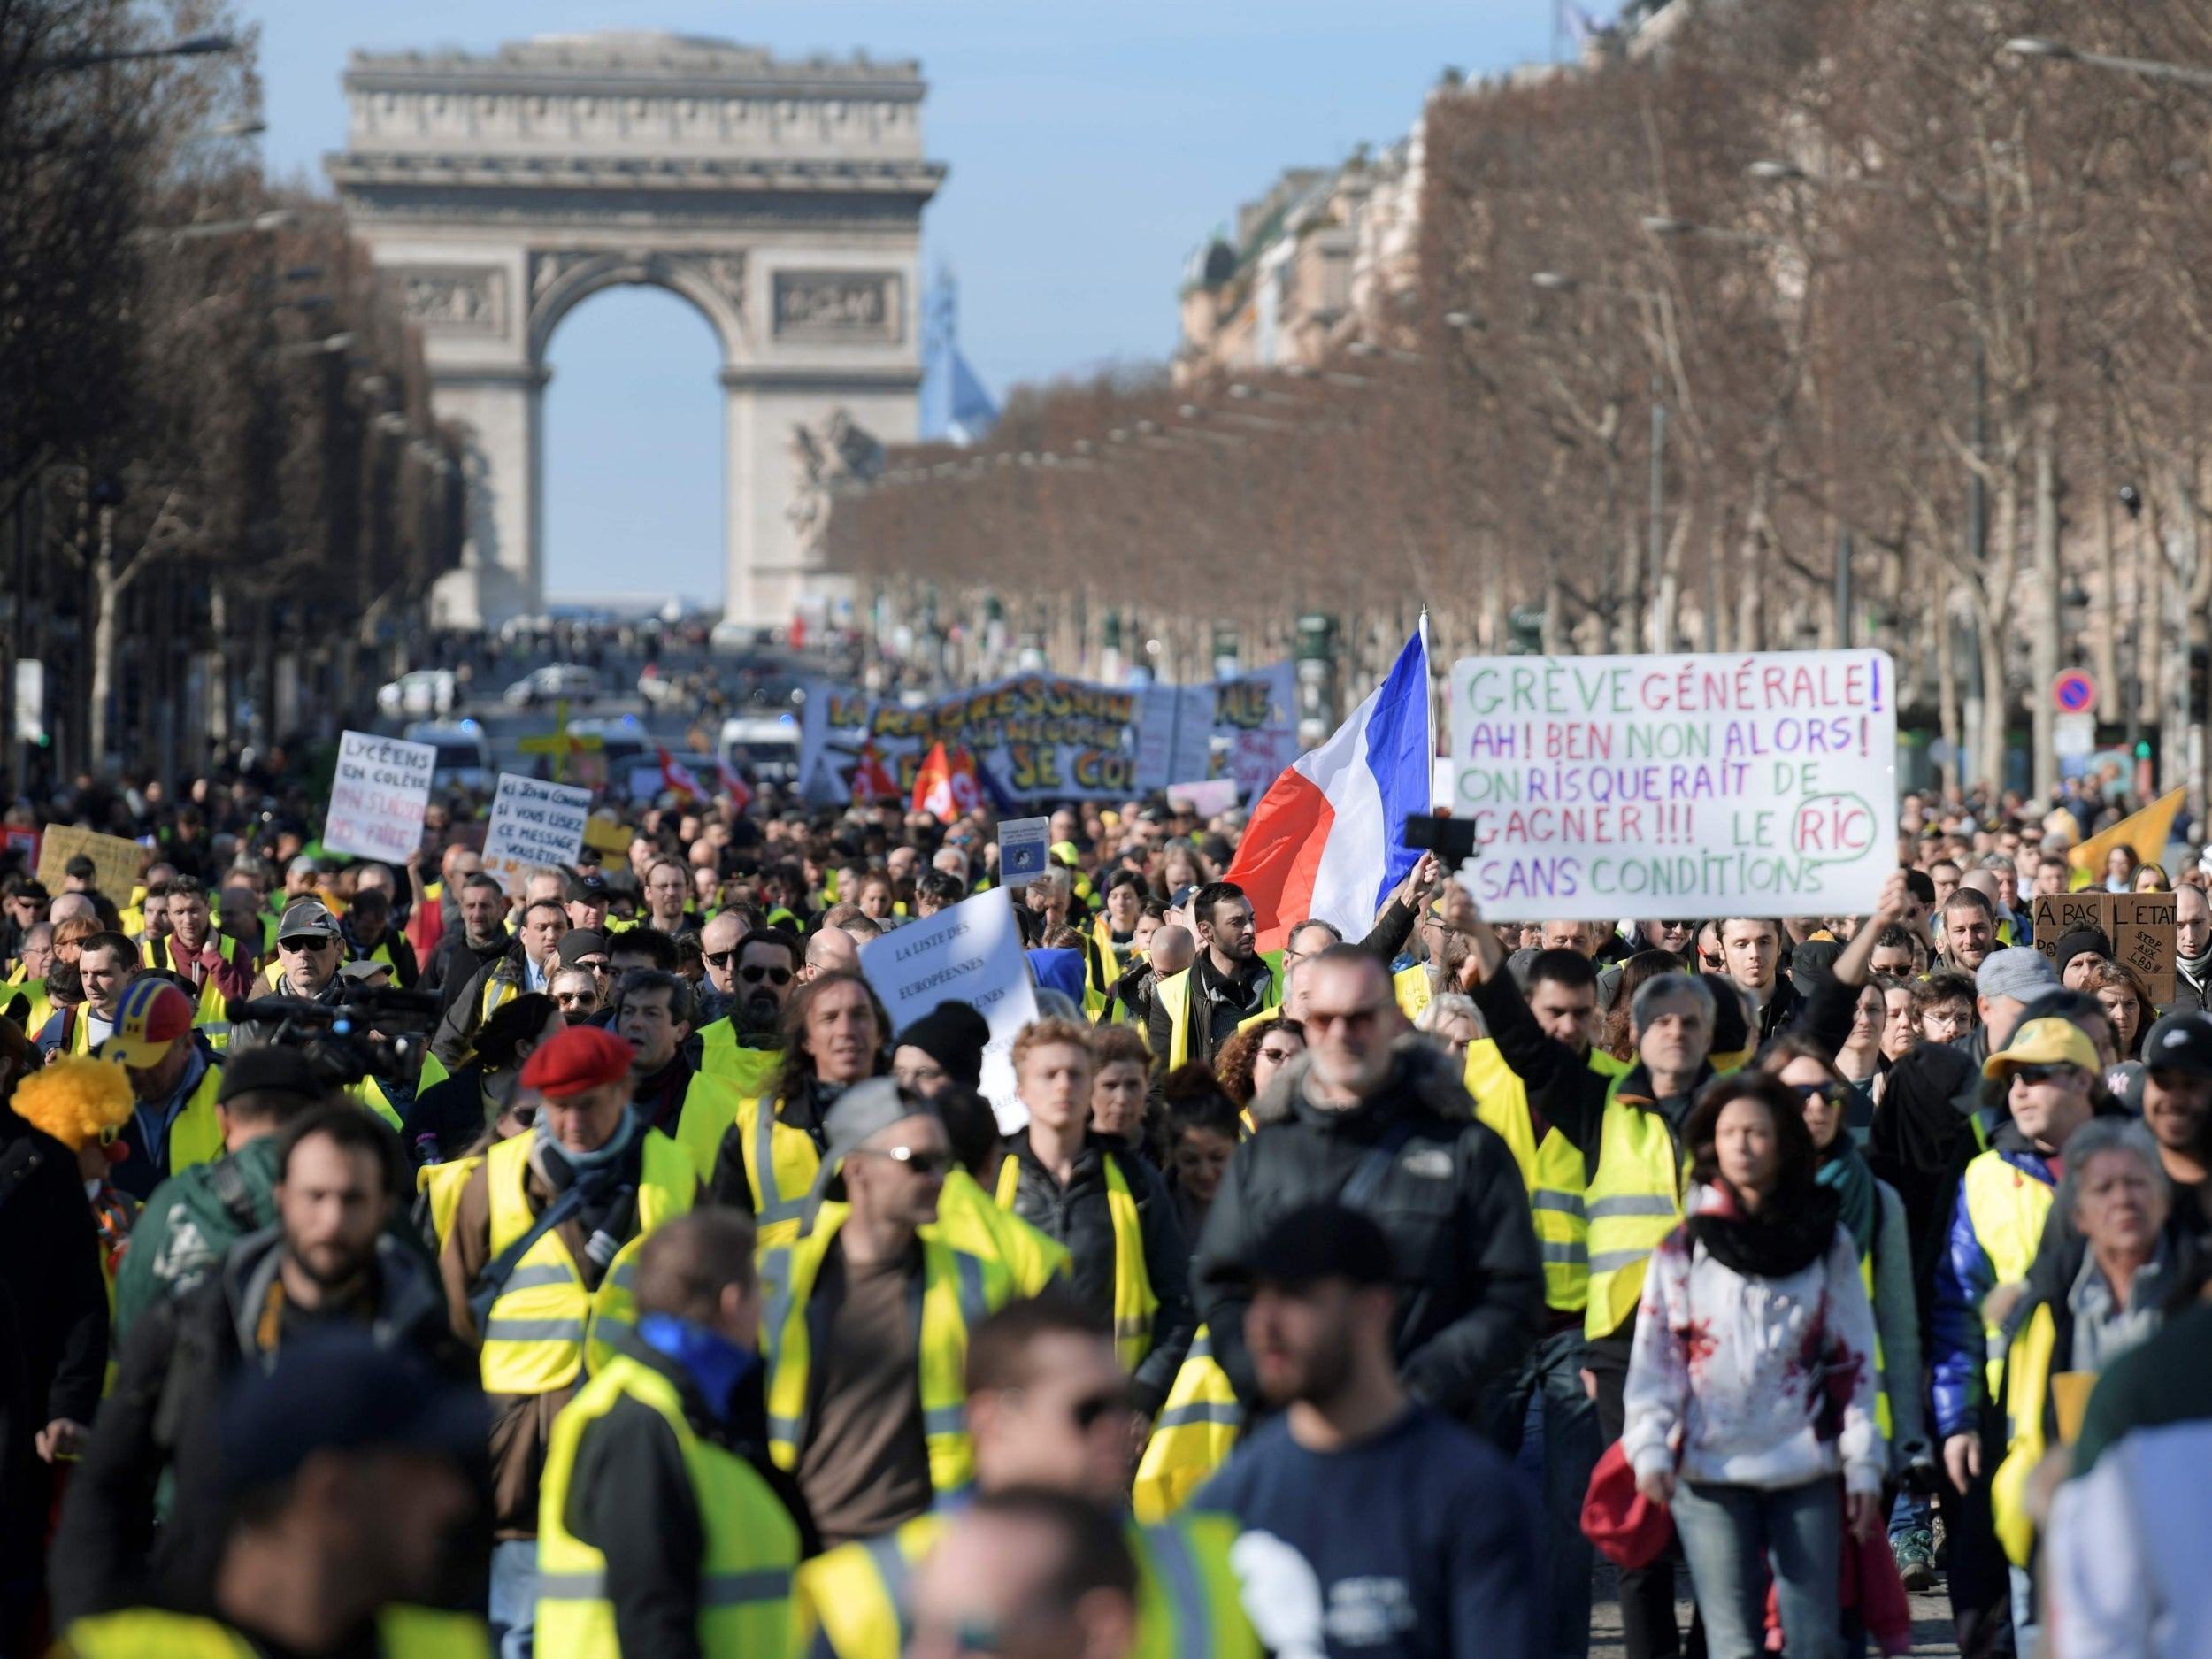 The gilets jaunes in France give us a very important lesson